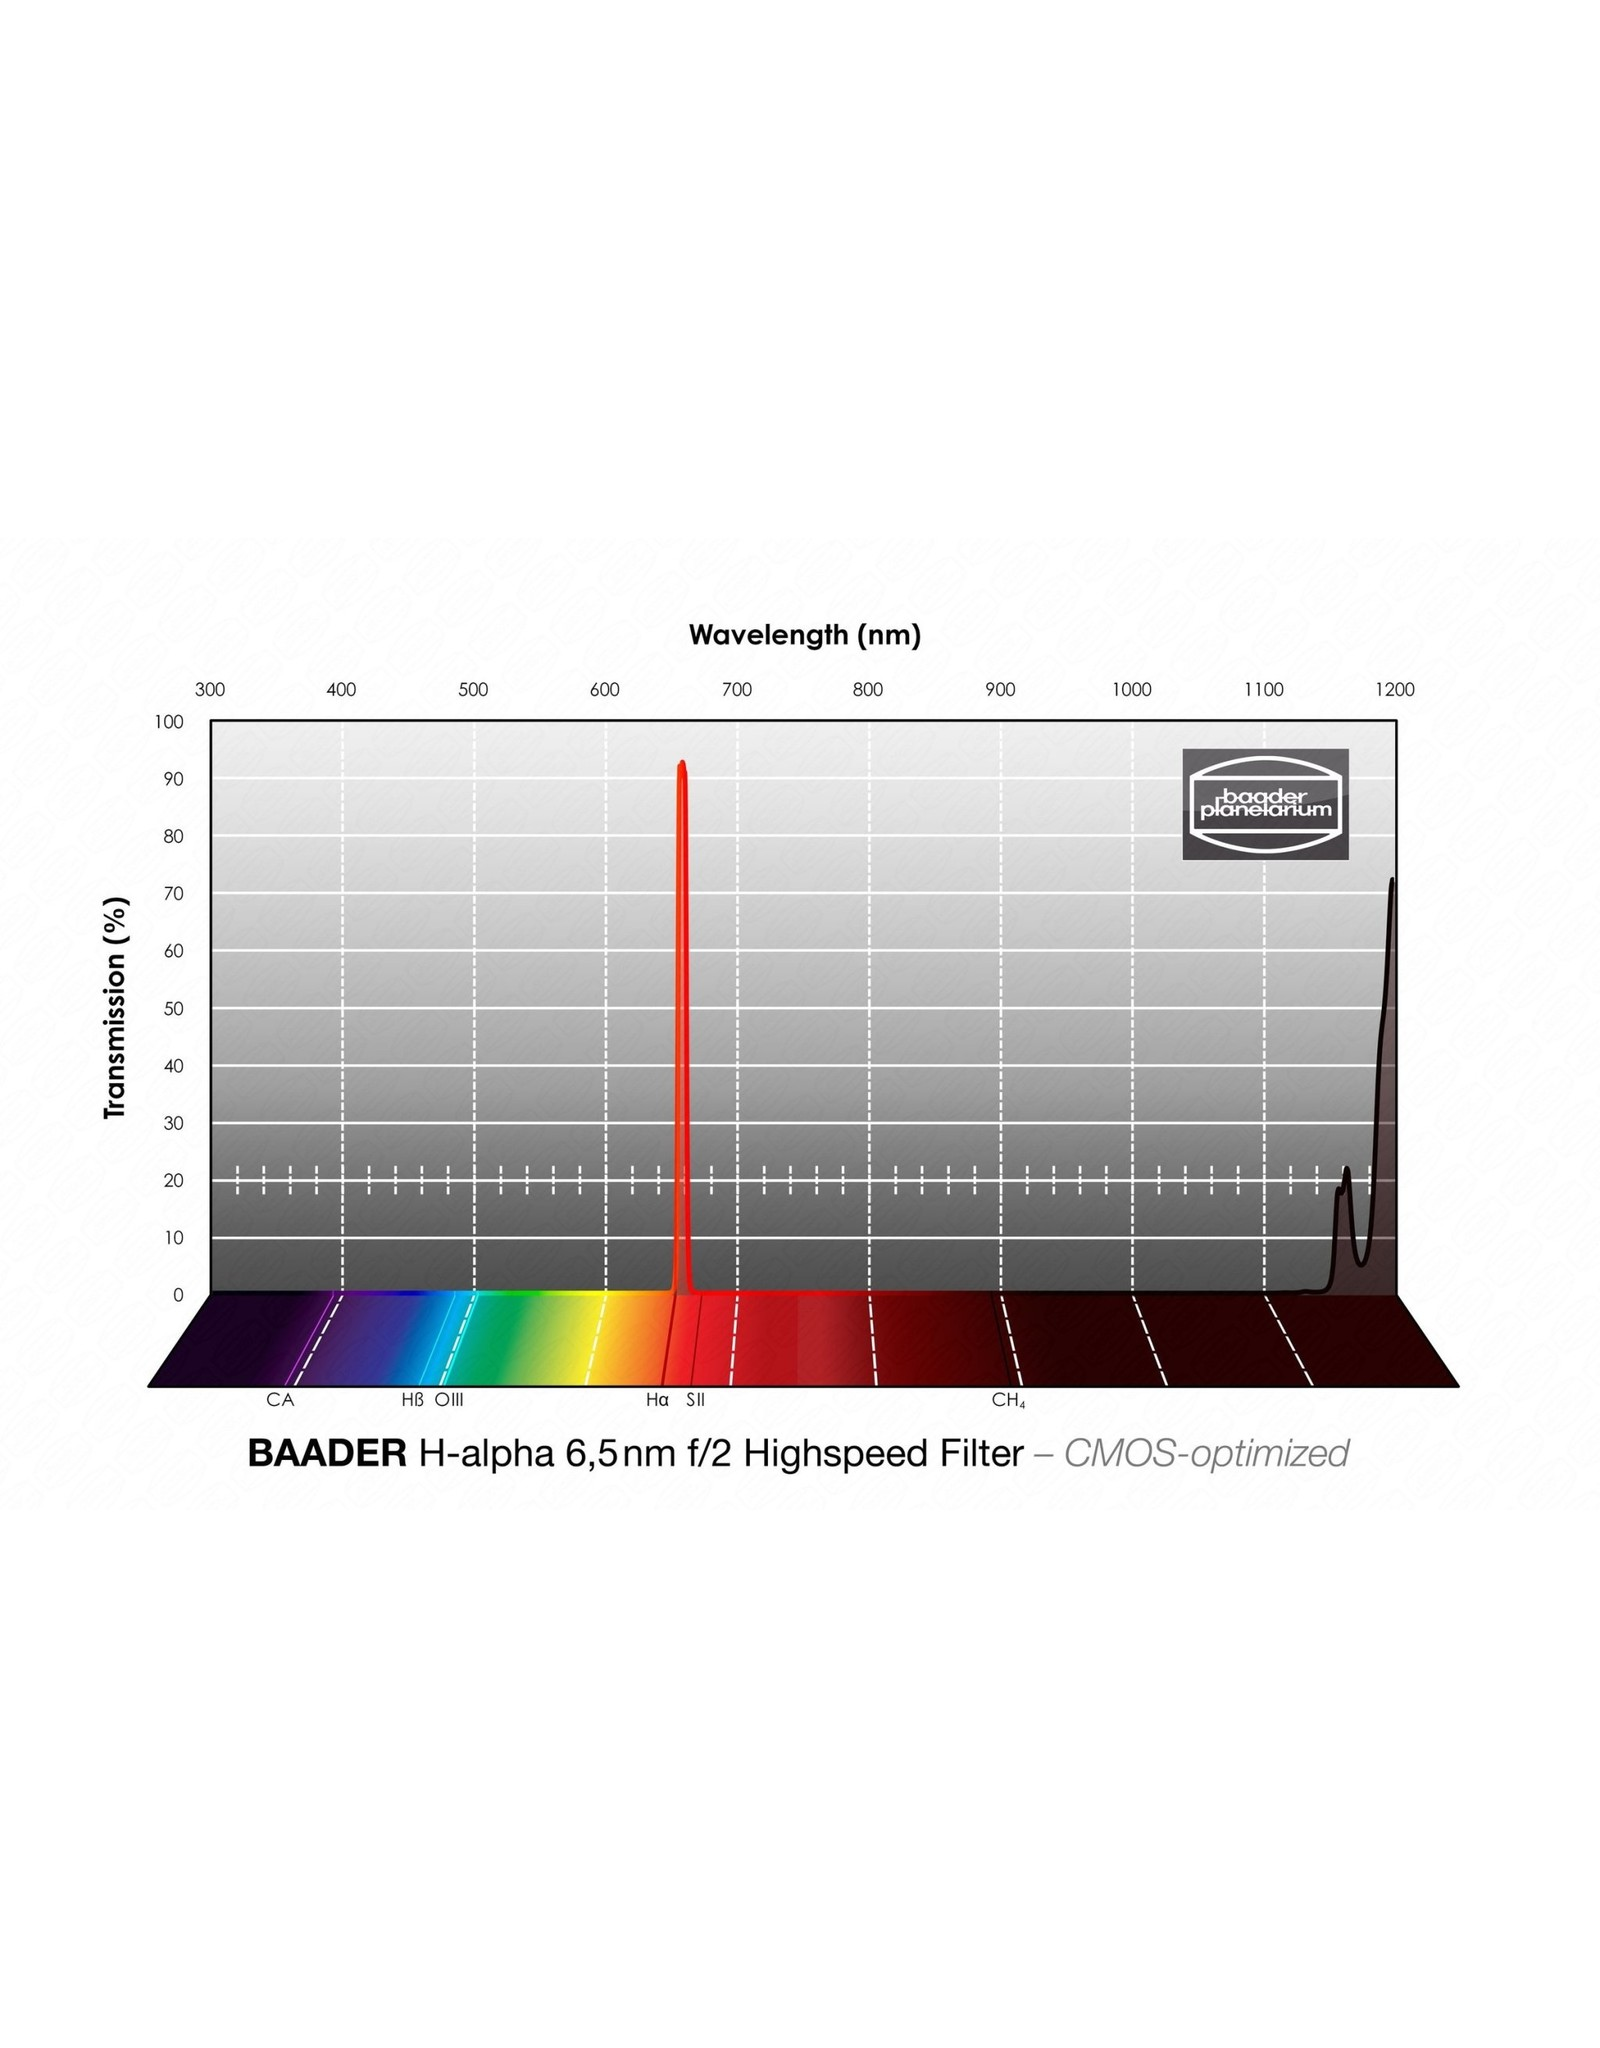 Baader Planetarium Baader 3.5nm / 4nm Ultra-Narrowband Filter set – CMOS-optimized - H-alpha, O-III, S-11 (Specify Size)